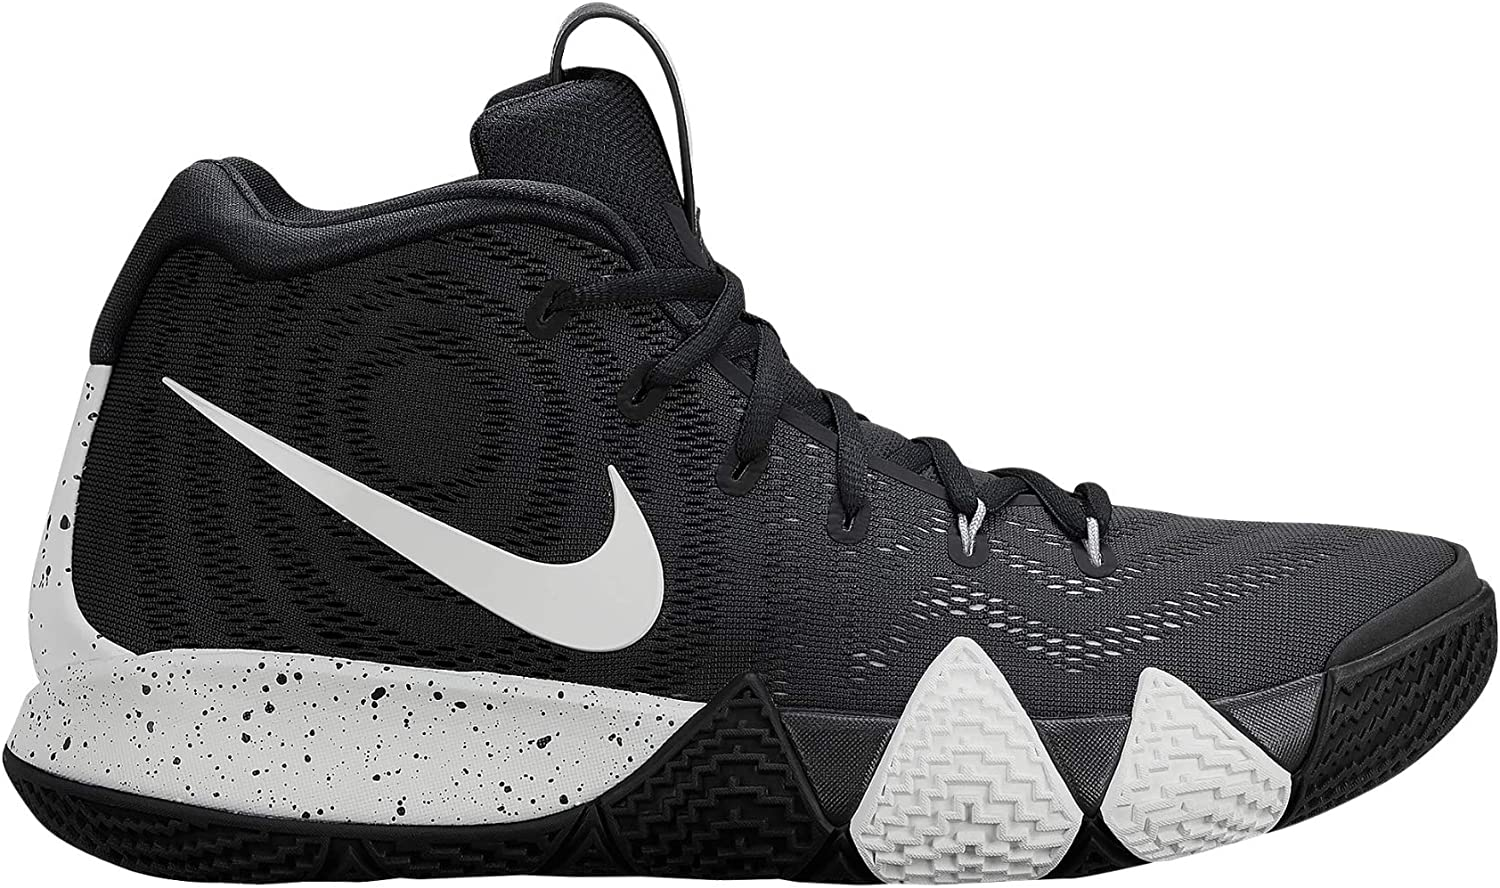 Nike Mens Kyrie 4 TB Basketball Shoes (10 D(M) US) 黒/白い